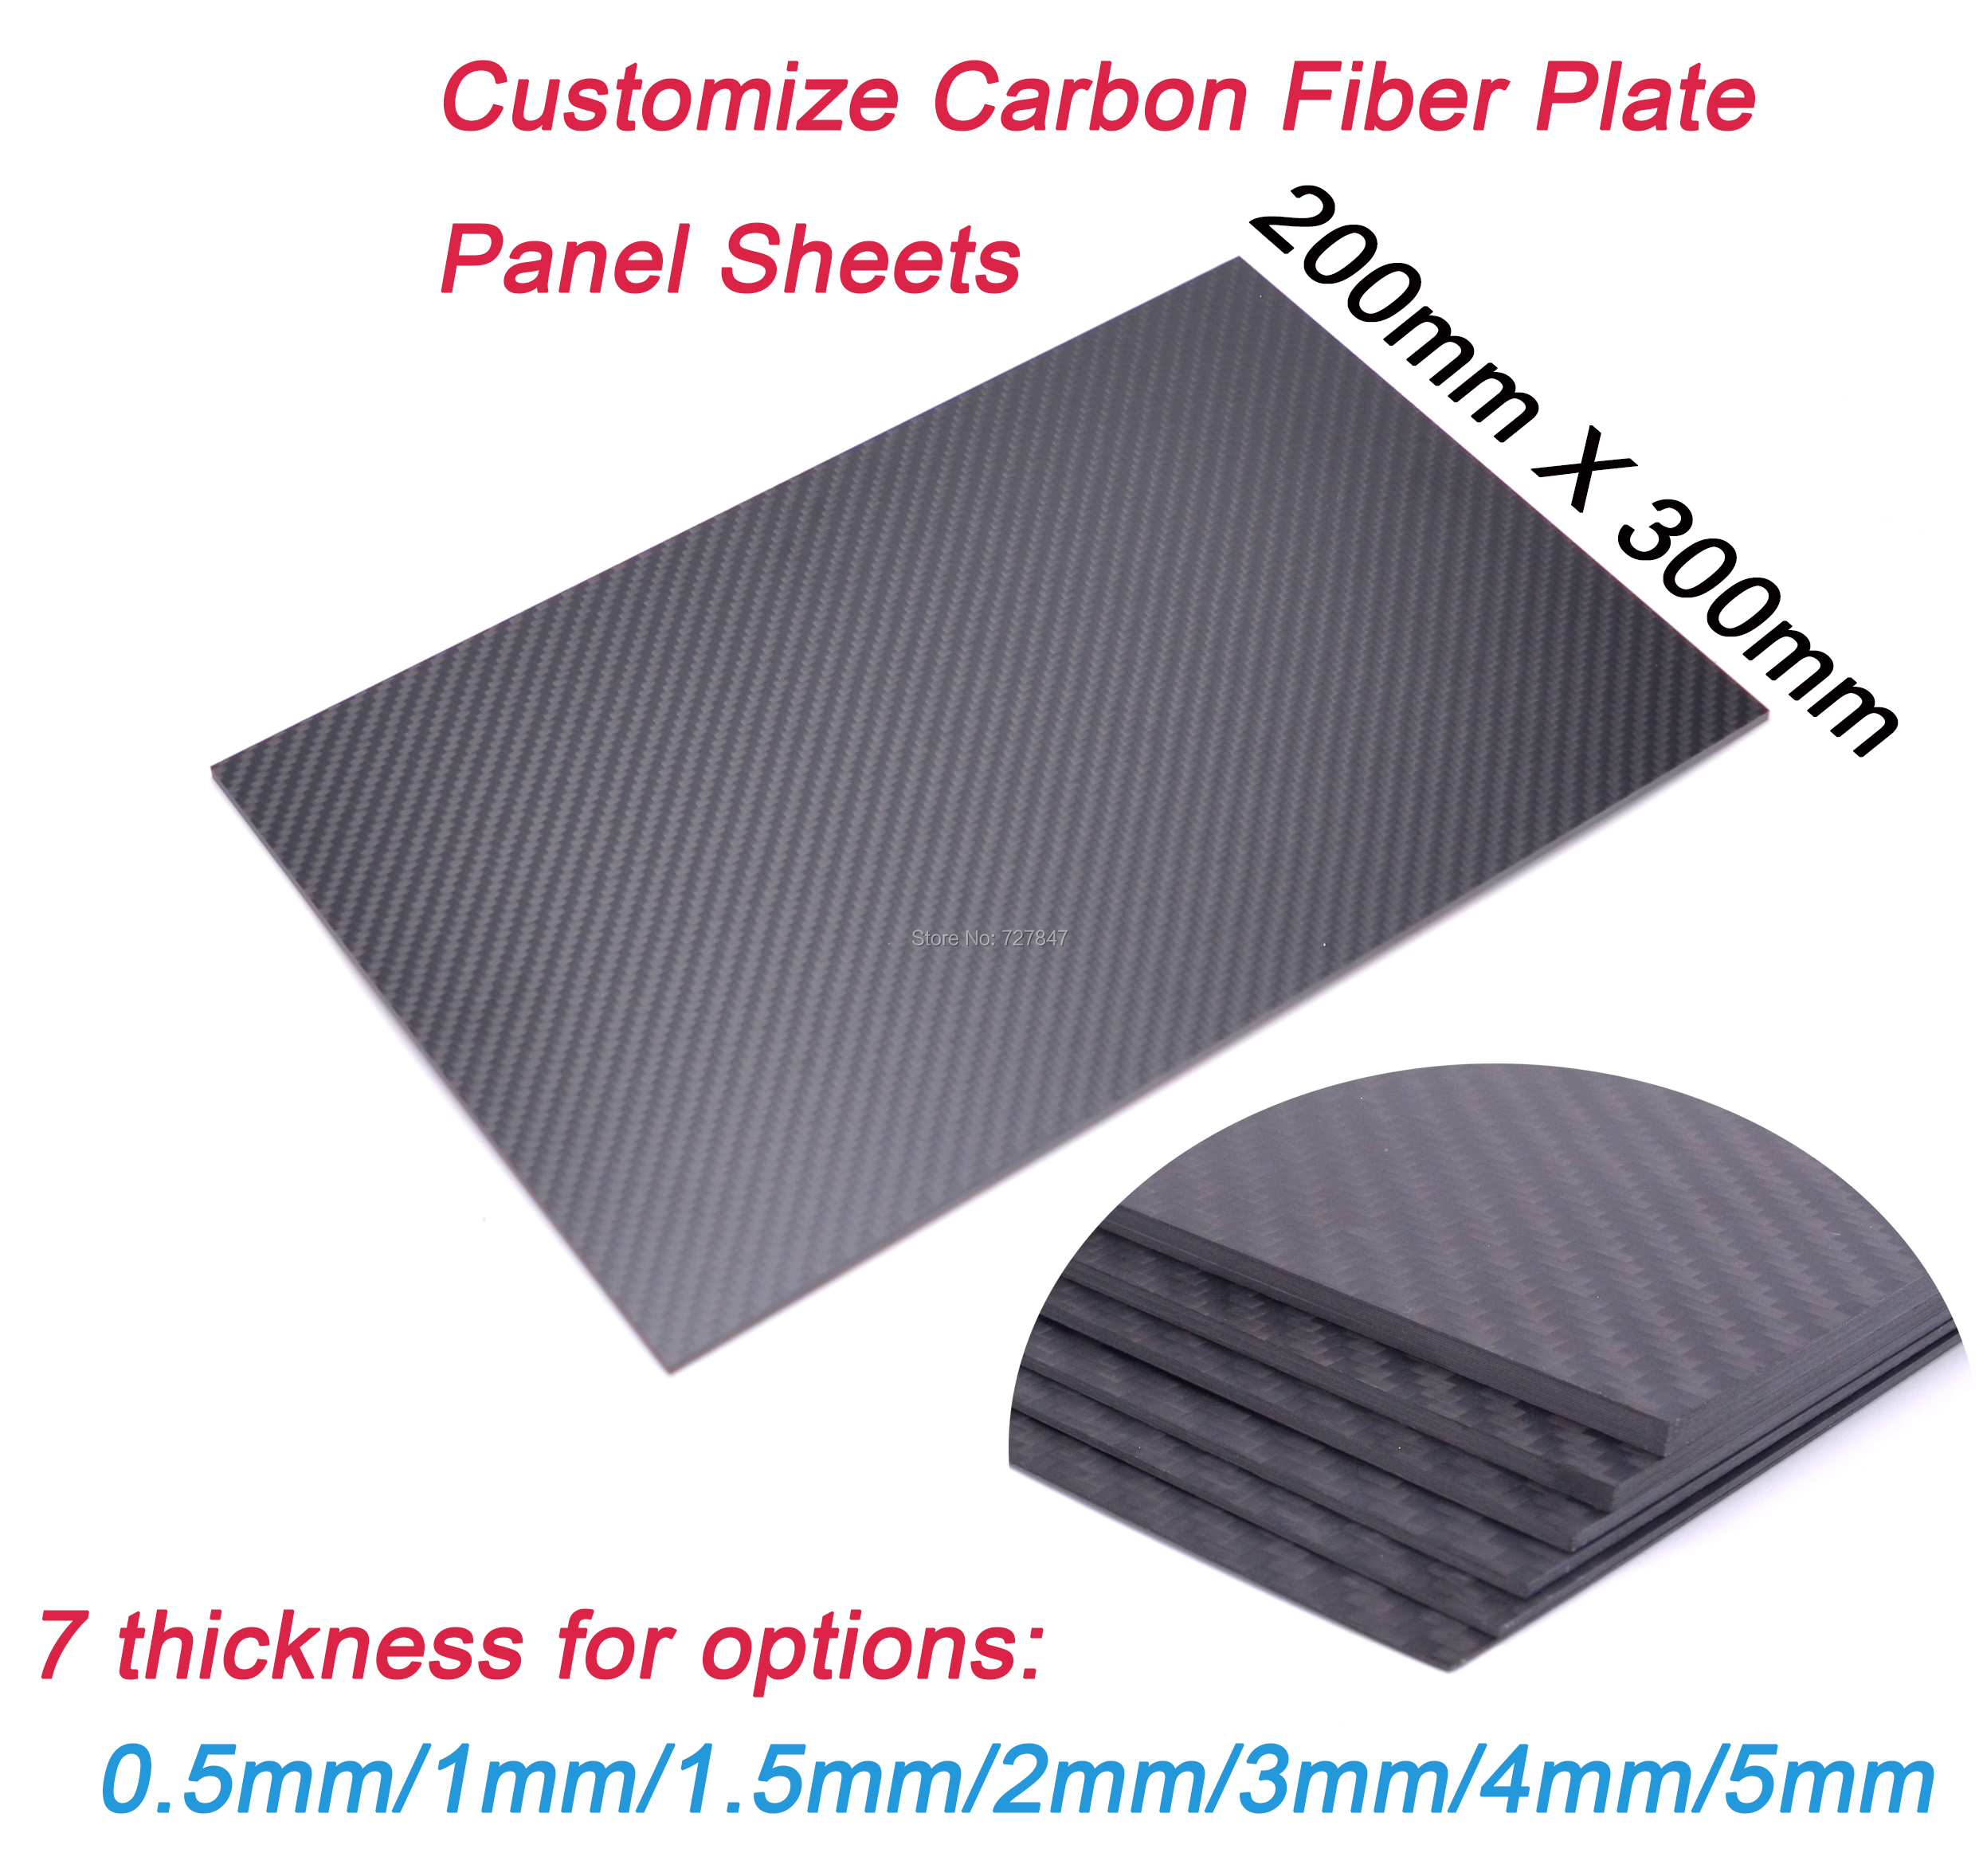 Qiman Real Glossy Carbon Fiber Plate Panel Sheet 3K Plain Weave 200/×300/×1mm